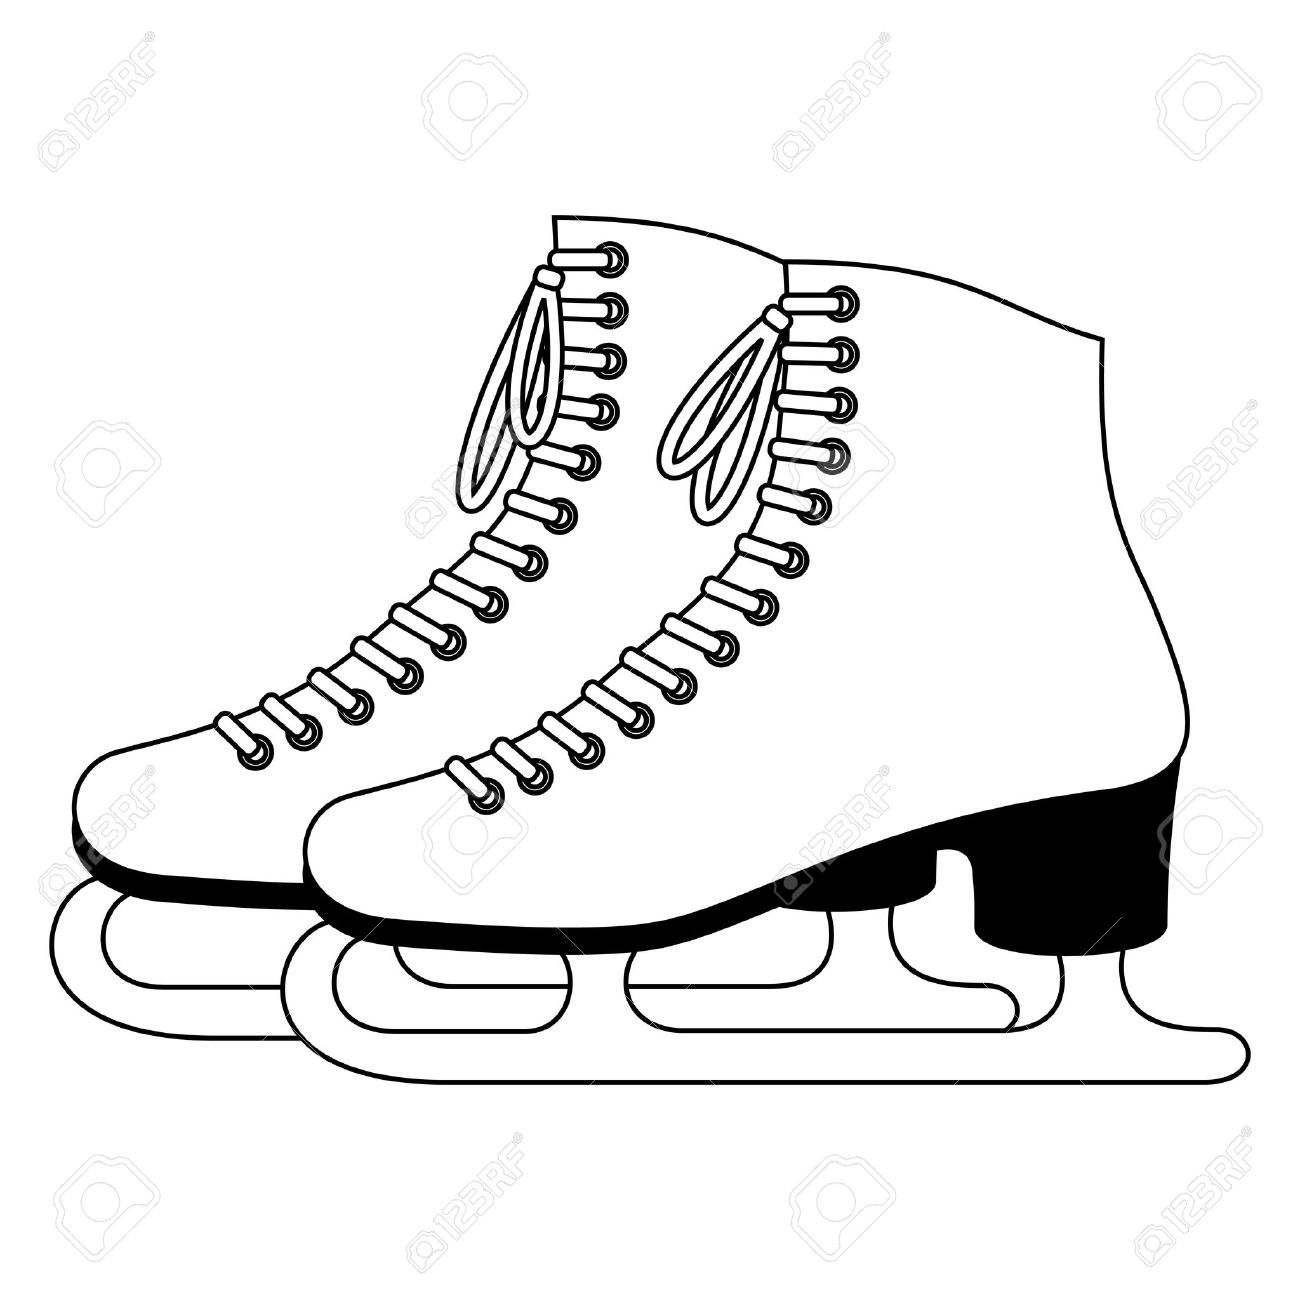 figure skates drawing at getdrawings com free for personal use rh getdrawings com free clip art ice skating pictures